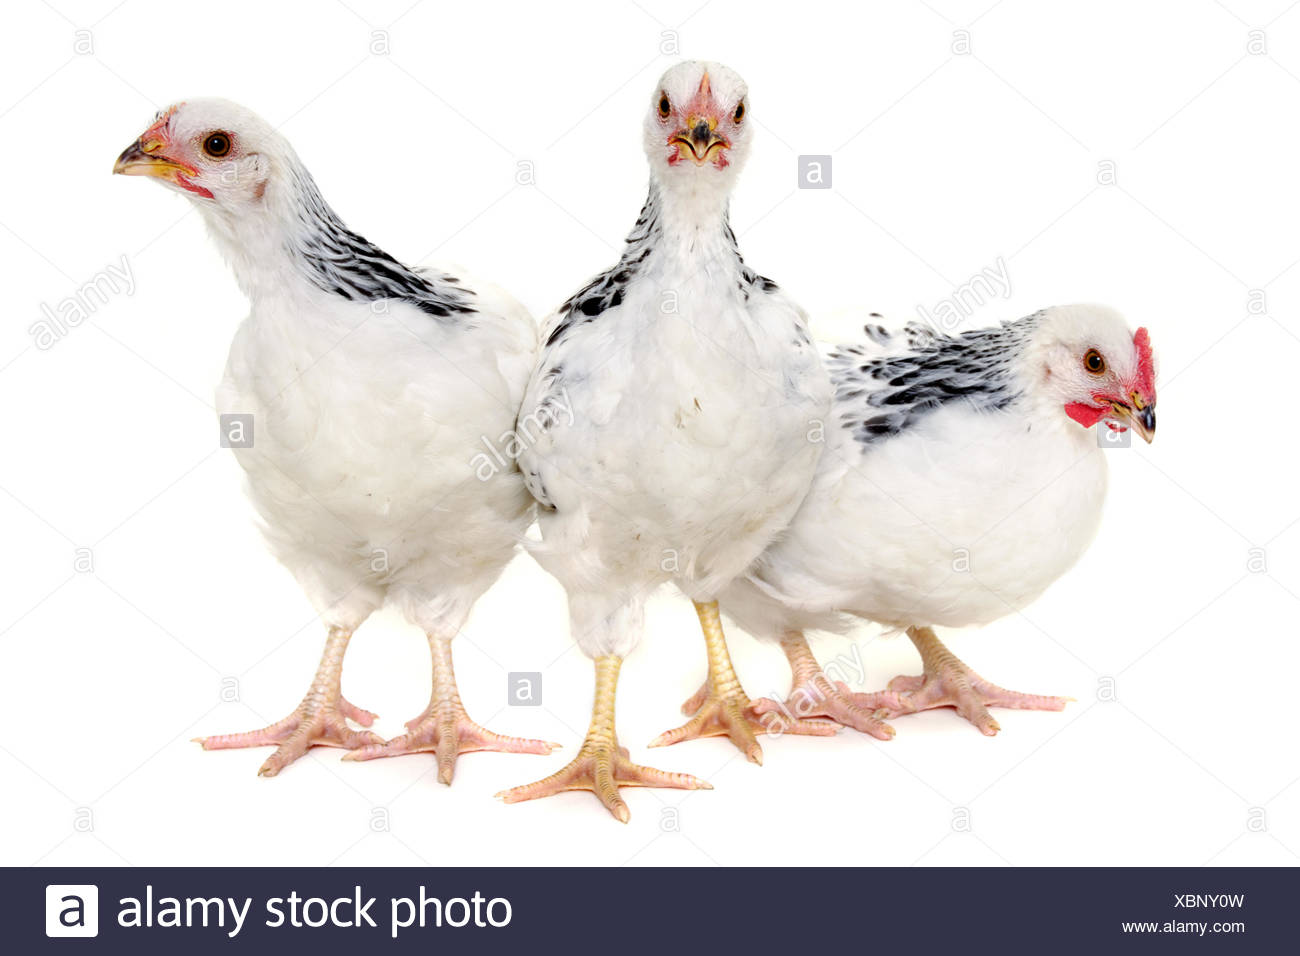 Group of chickens - Stock Image